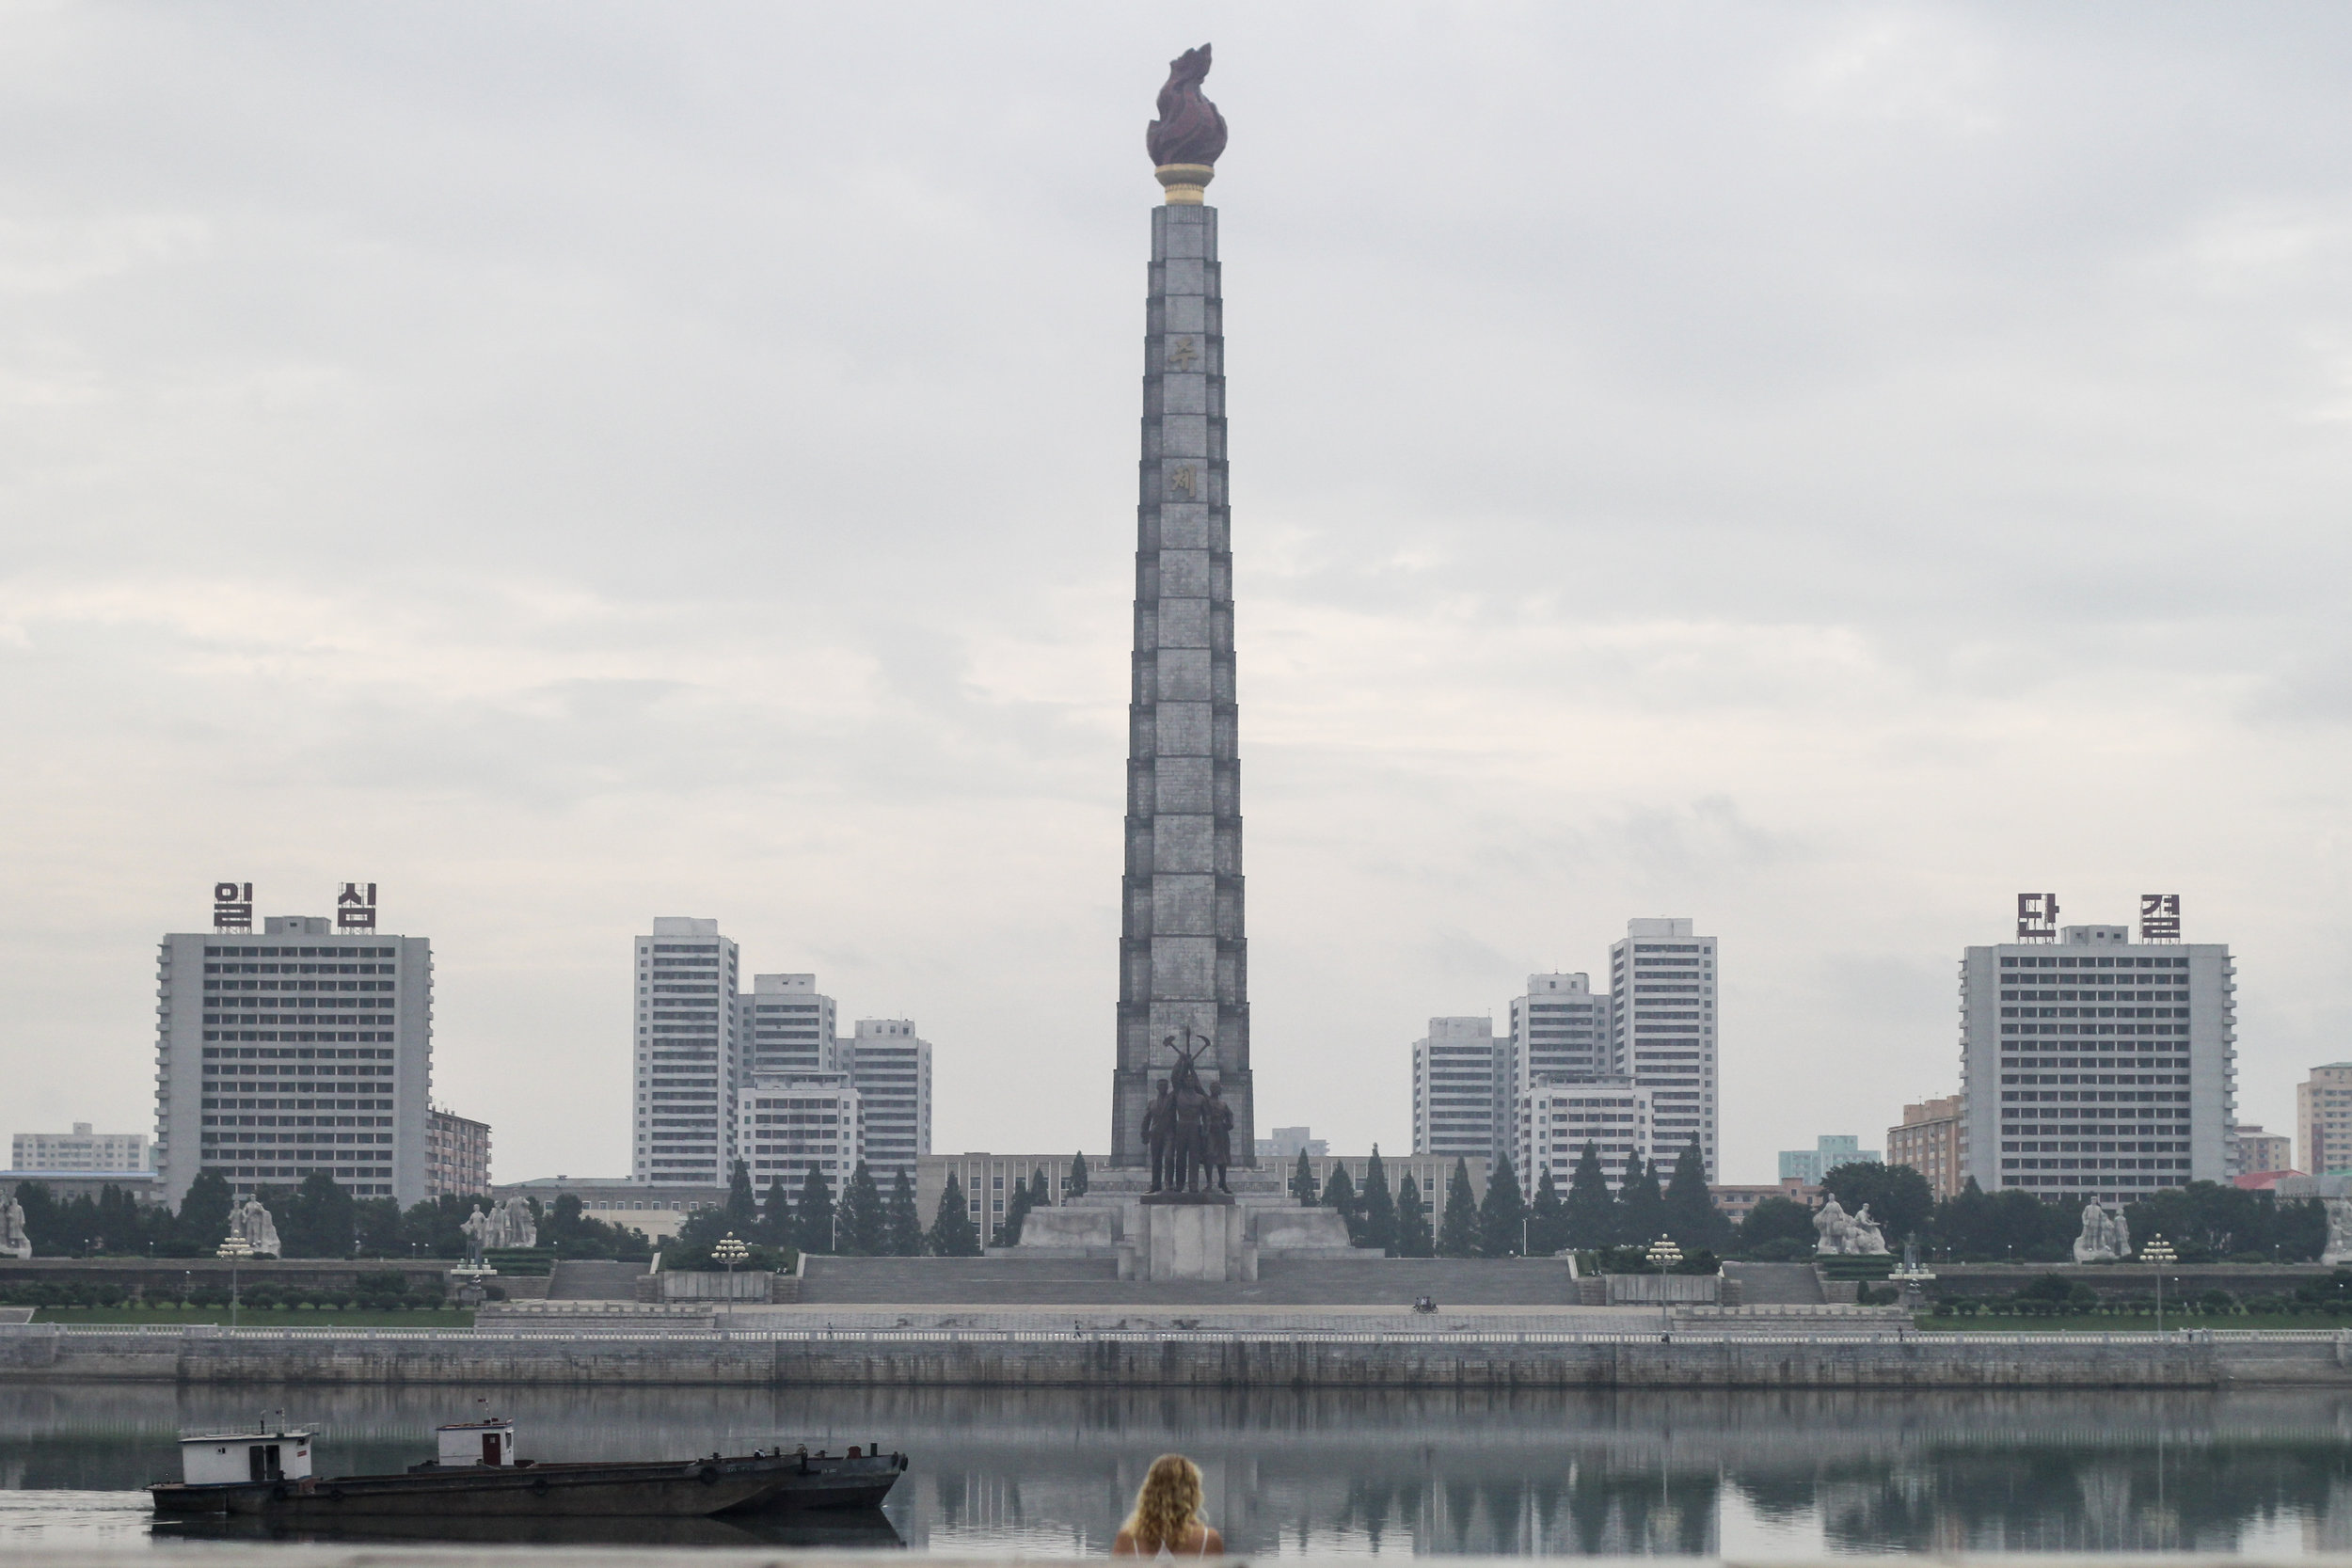 Pyongyang has lot's and lot's of wild monuments.